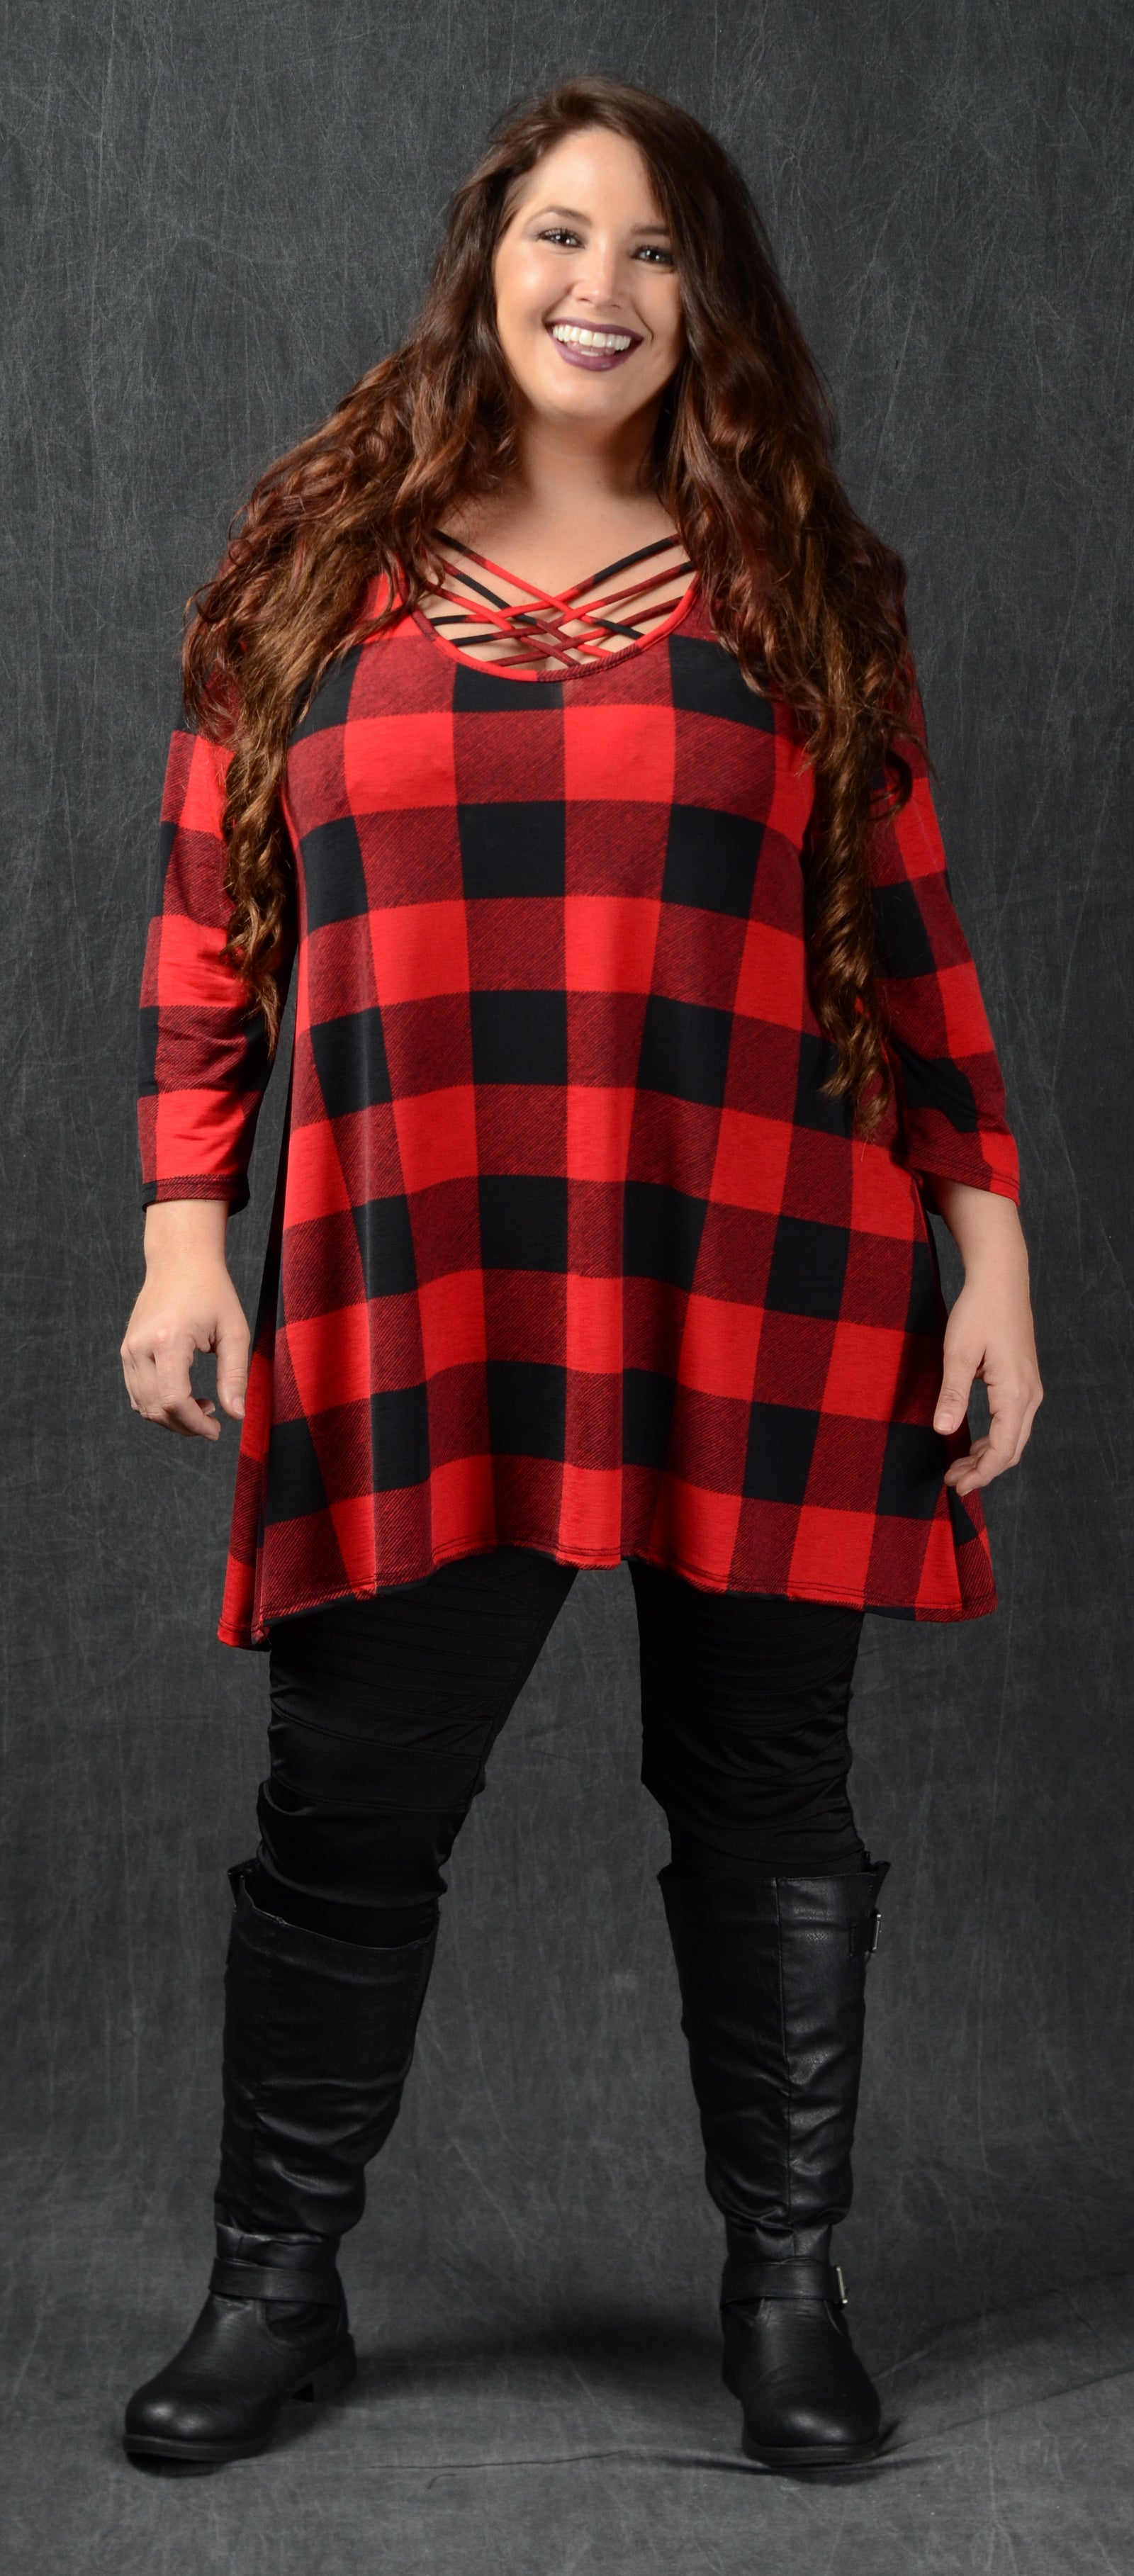 Red & Black Checker Top - www.mycurvystore.com - Curvy Boutique - Plus Size